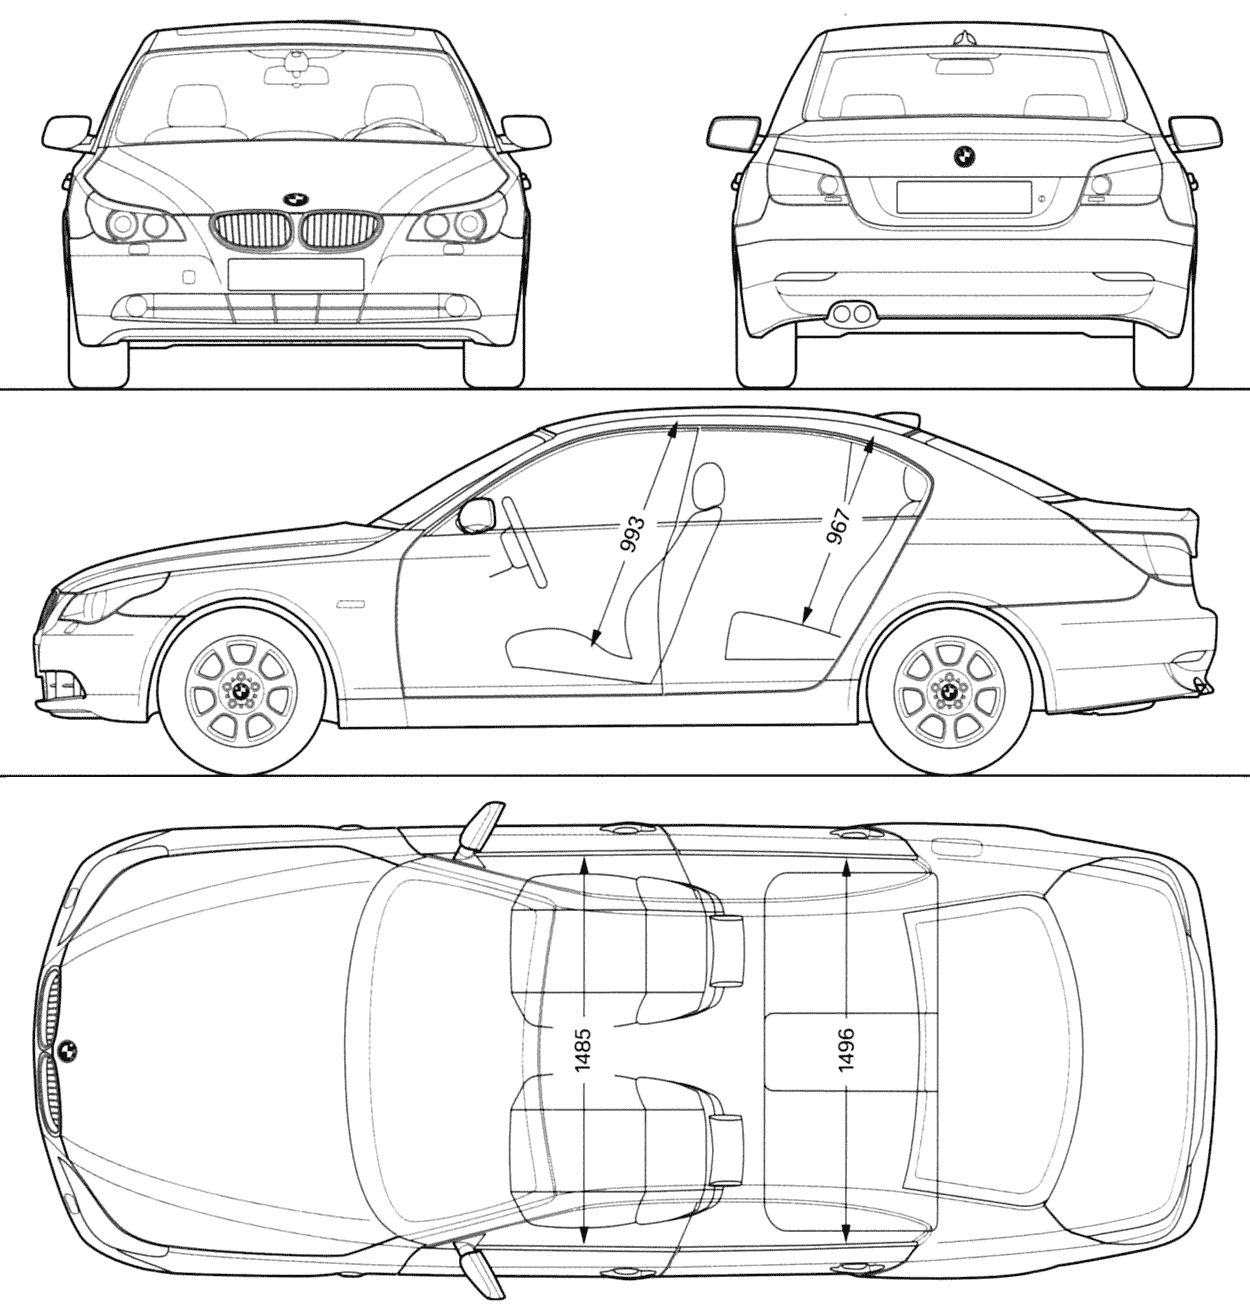 Blueprints Bmw Serie 5 E60 Model Sheet Blue Print